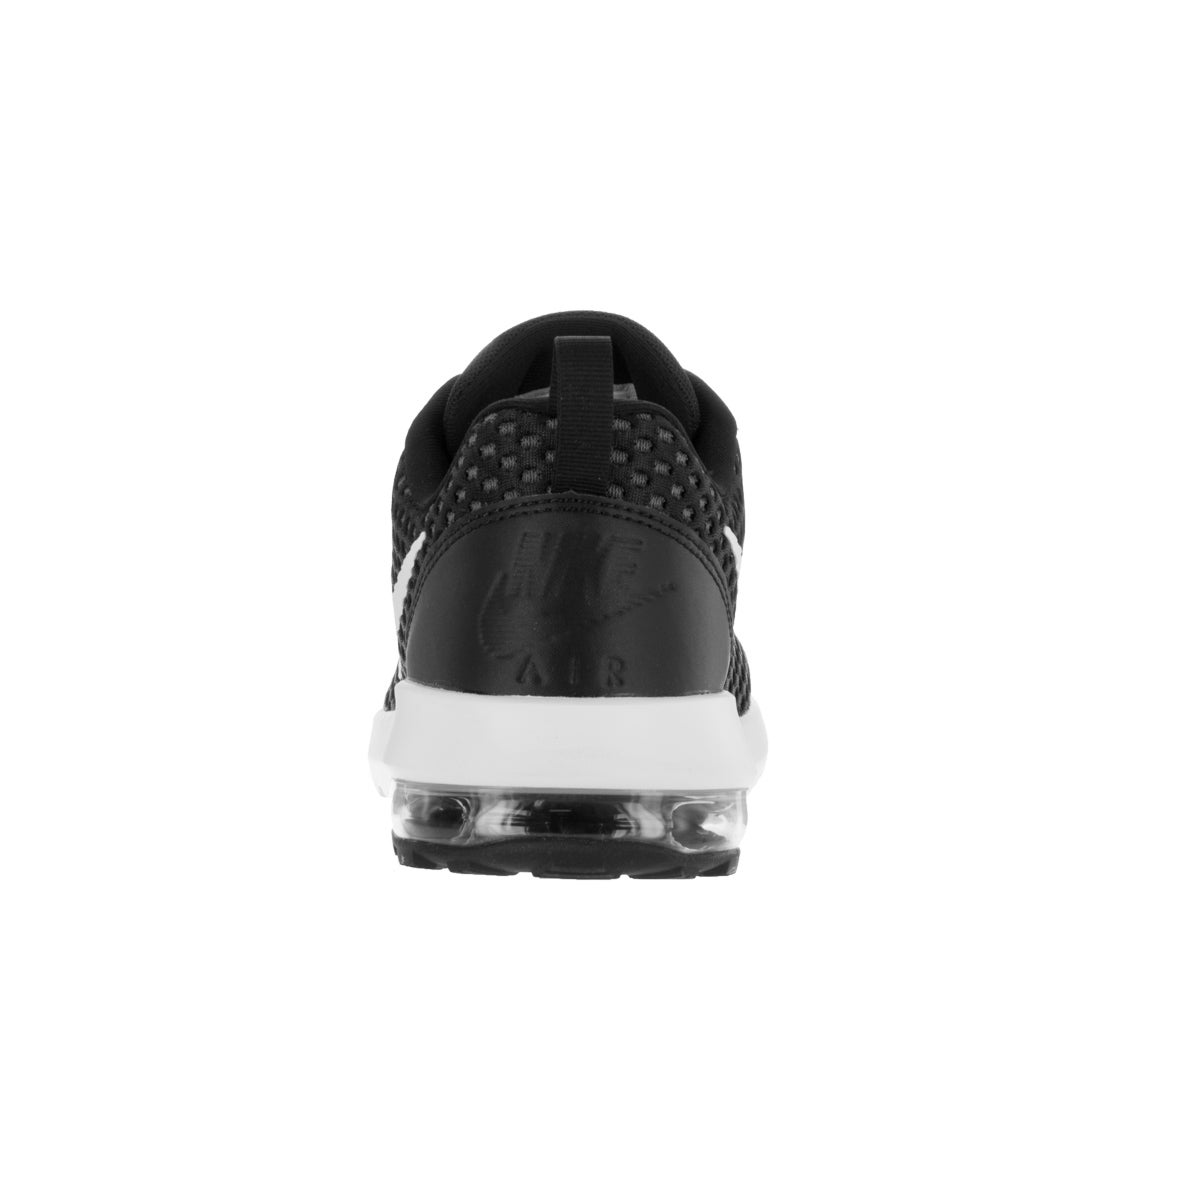 9c8db903b2e0 Shop Nike Men s Air Max Turbulence LS Black White Running Shoe - Free  Shipping Today - Overstock - 13394661